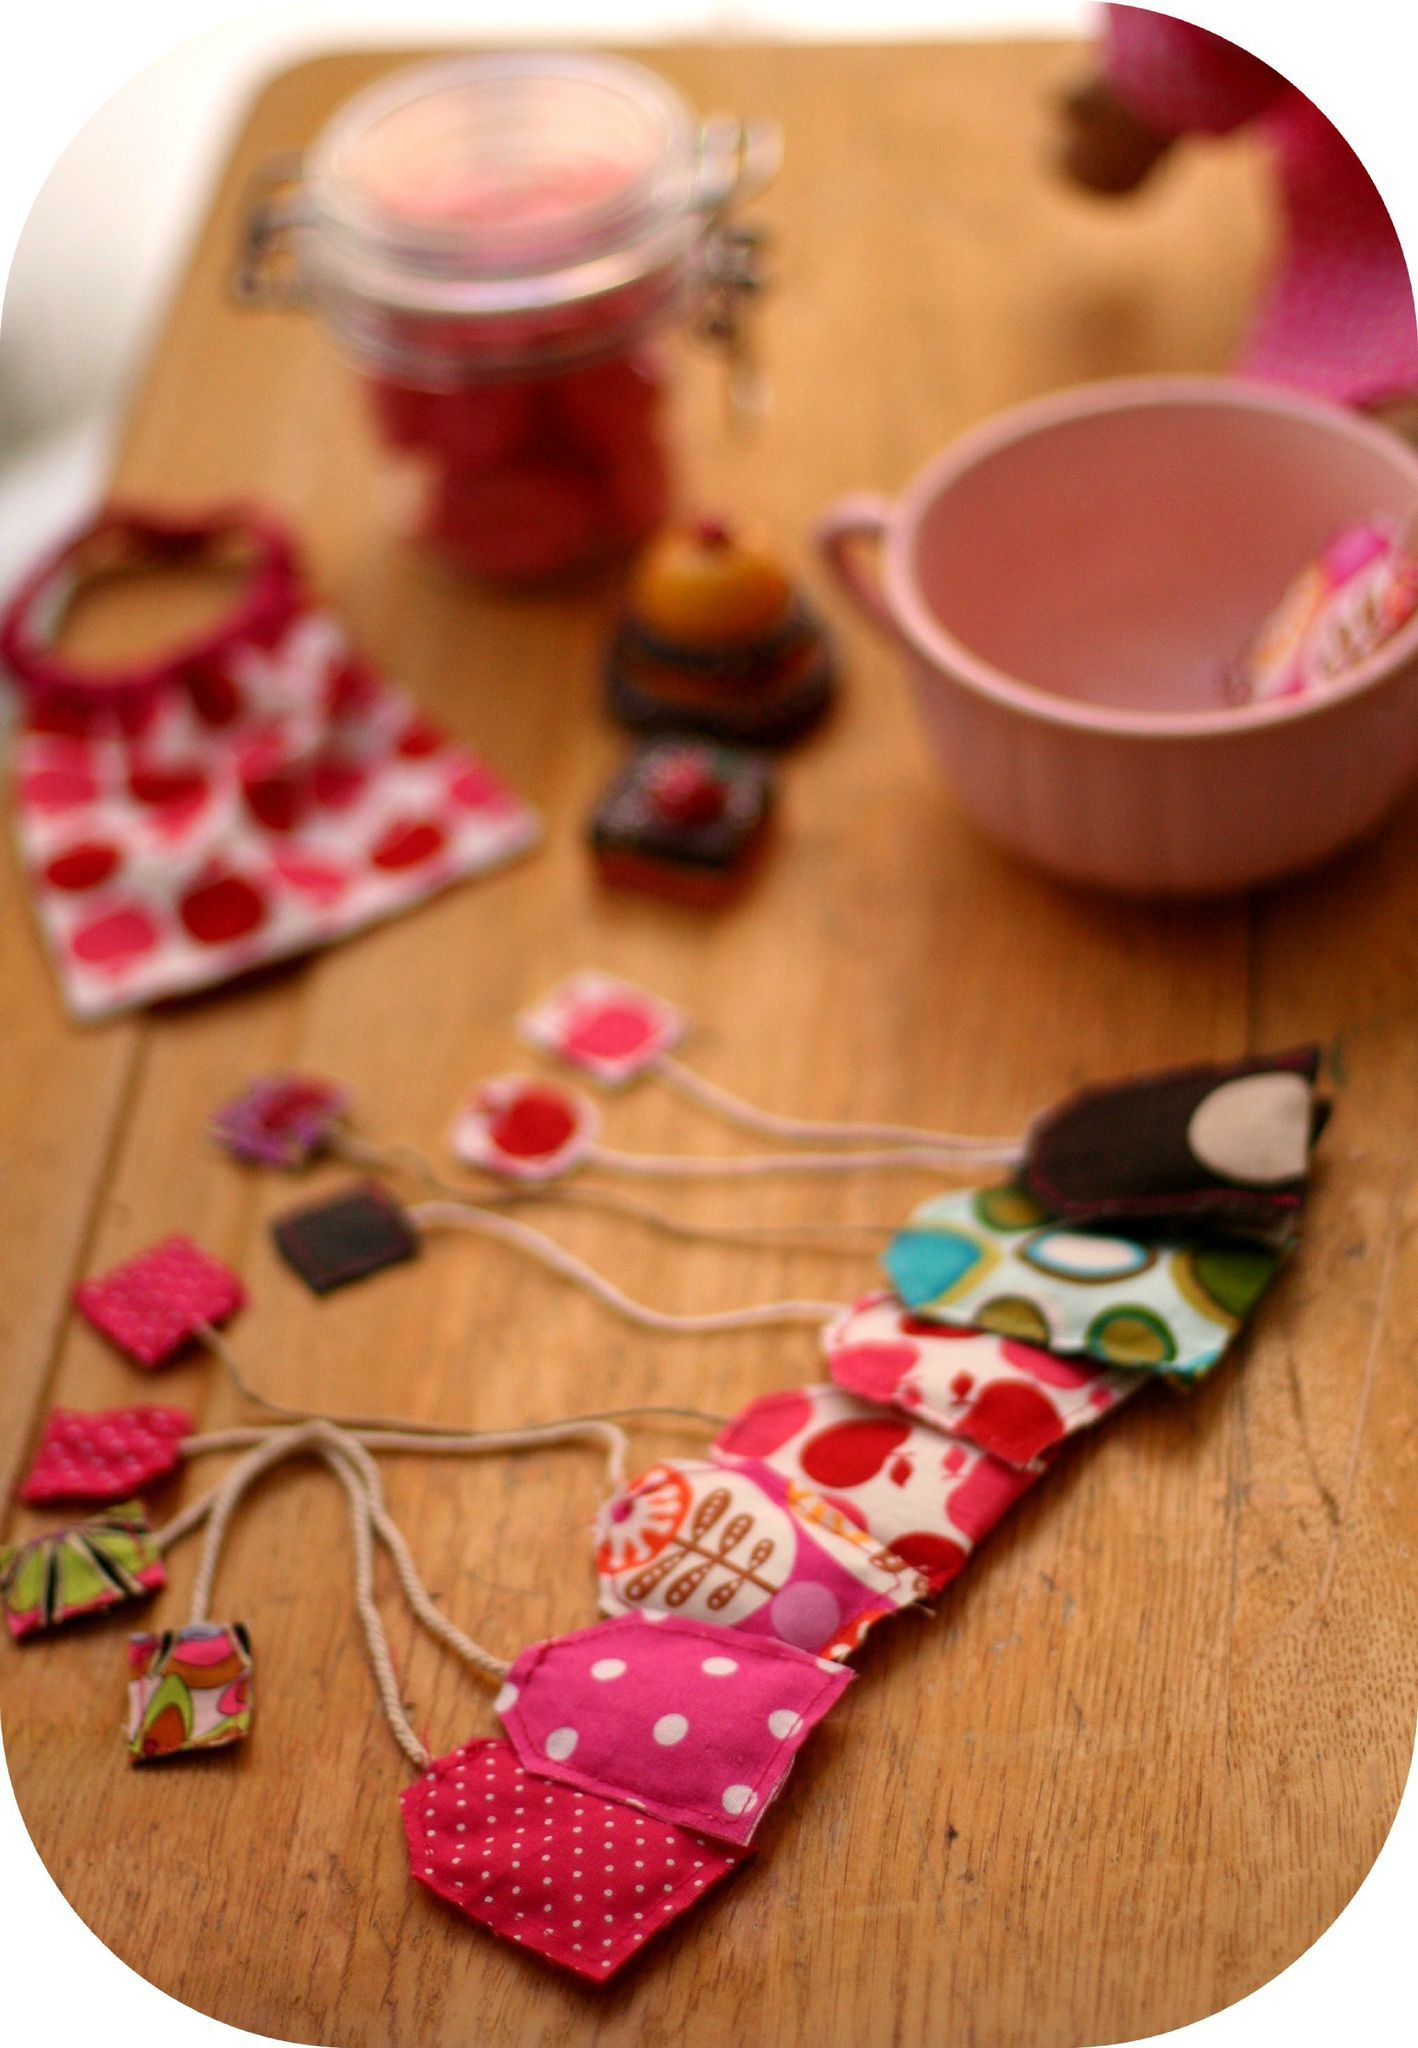 Pretend Play Tea Bags For Tea Parties, Made From Fabric Scraps. Good Gift  With A Nice Tea Set For A Little Girl. I Had Tea Parties With My Mother And  ...